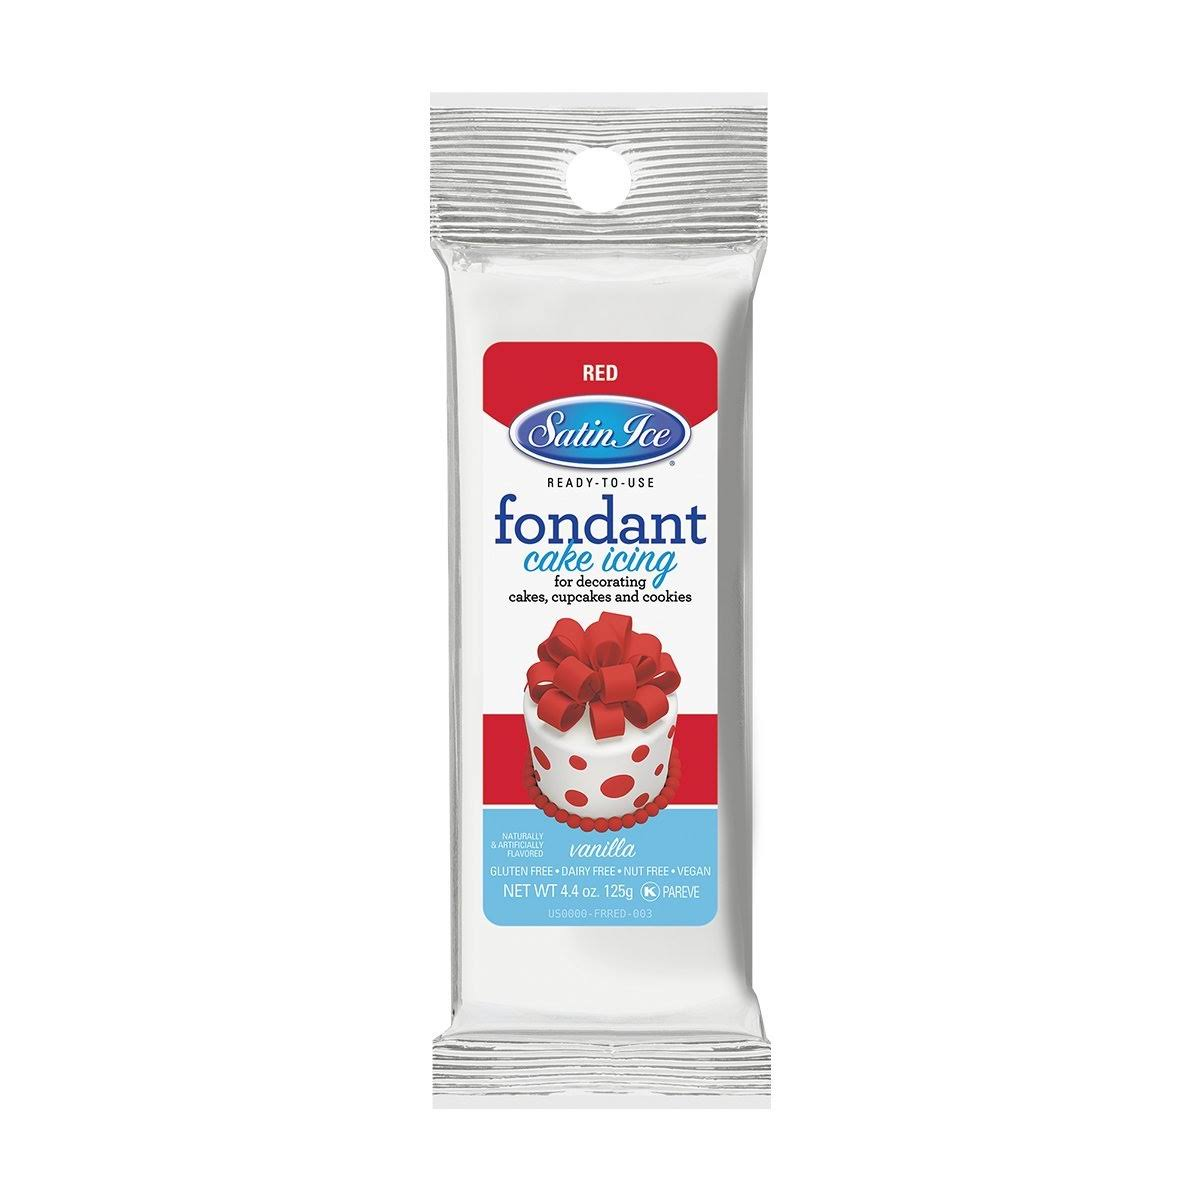 Satin Ice Rolled Fondant Icing - Red, 4oz